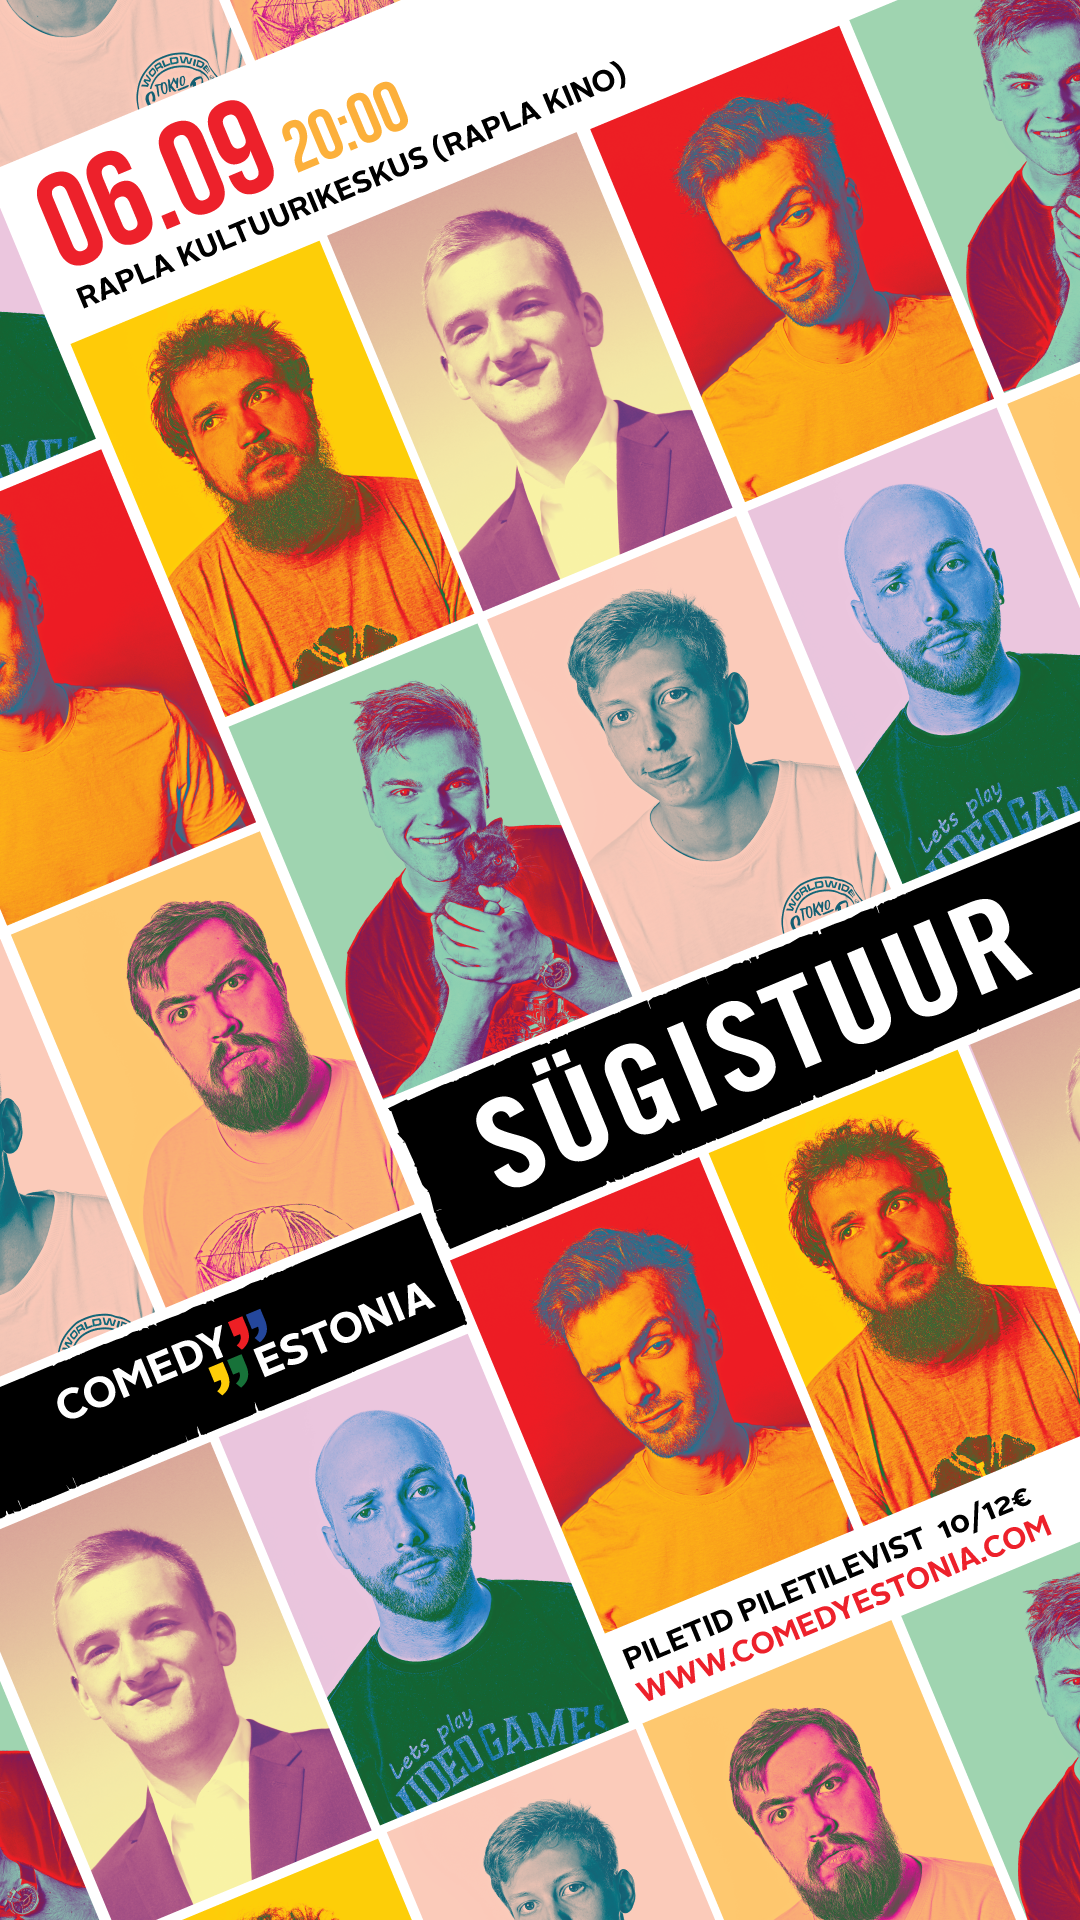 Comedy Estonia esitleb: Sügistuur 2019